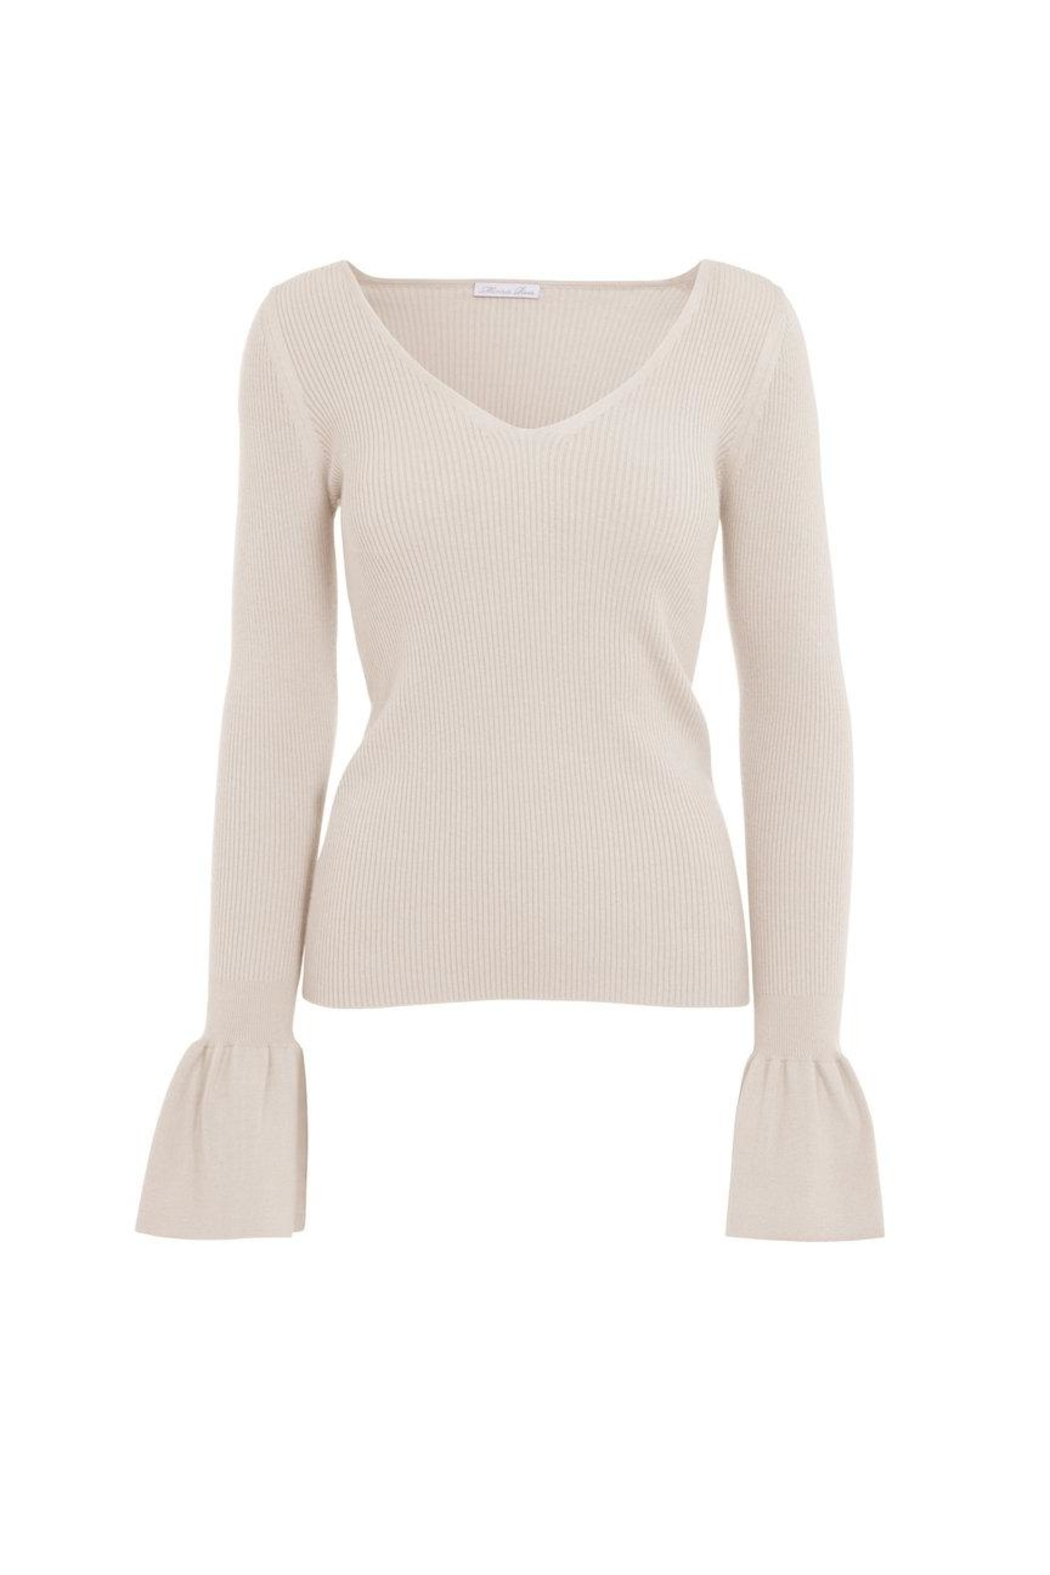 Minnie Rose Shaker Sleeve Sweater - Front Cropped Image